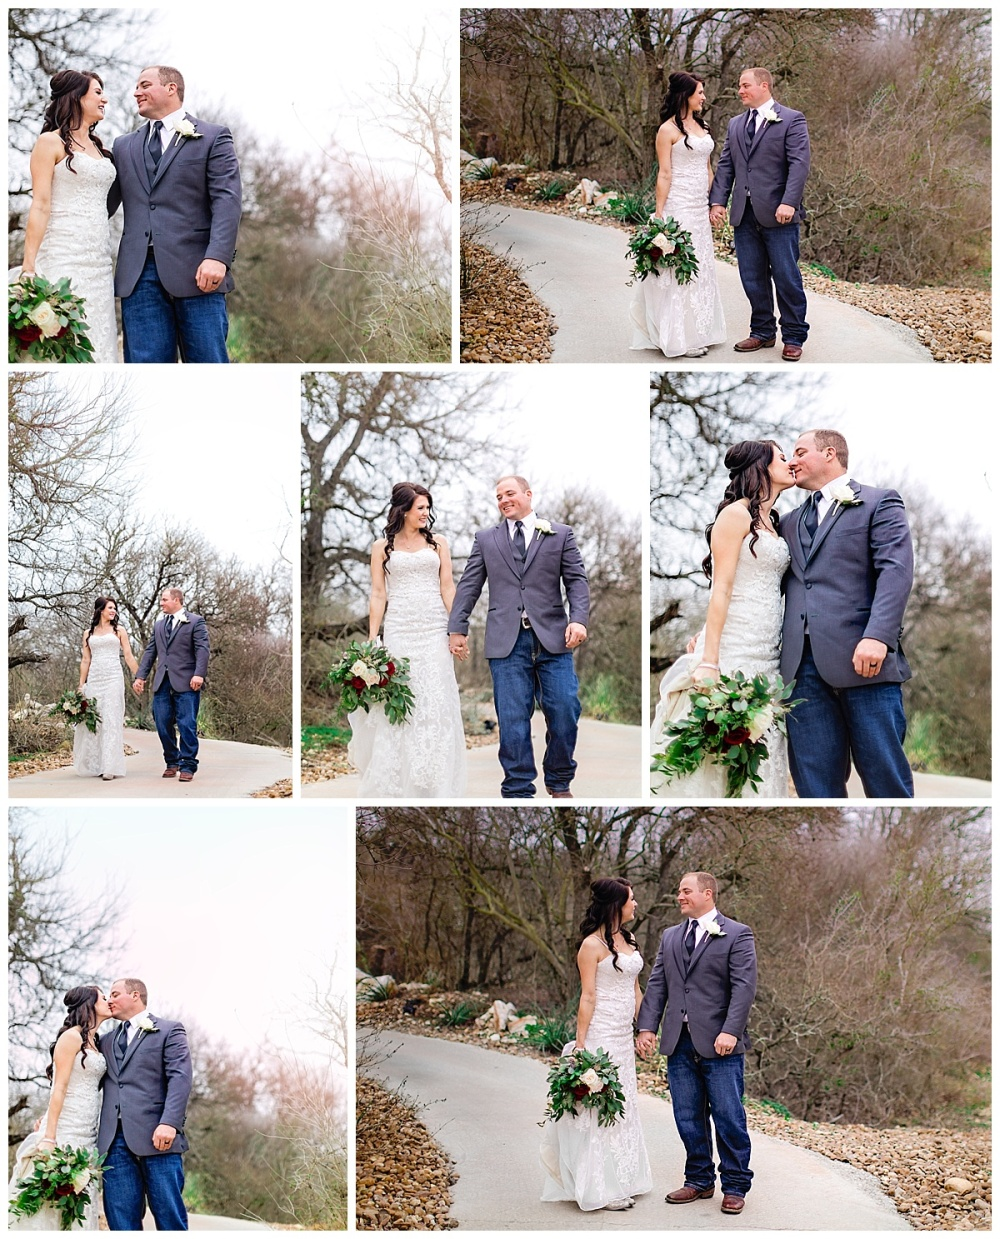 Carly-Barton-Photography-Geronimo-Oaks-Wedding-Venue-Texas-Hill-Country-Ronnie-Sarah_0069.jpg